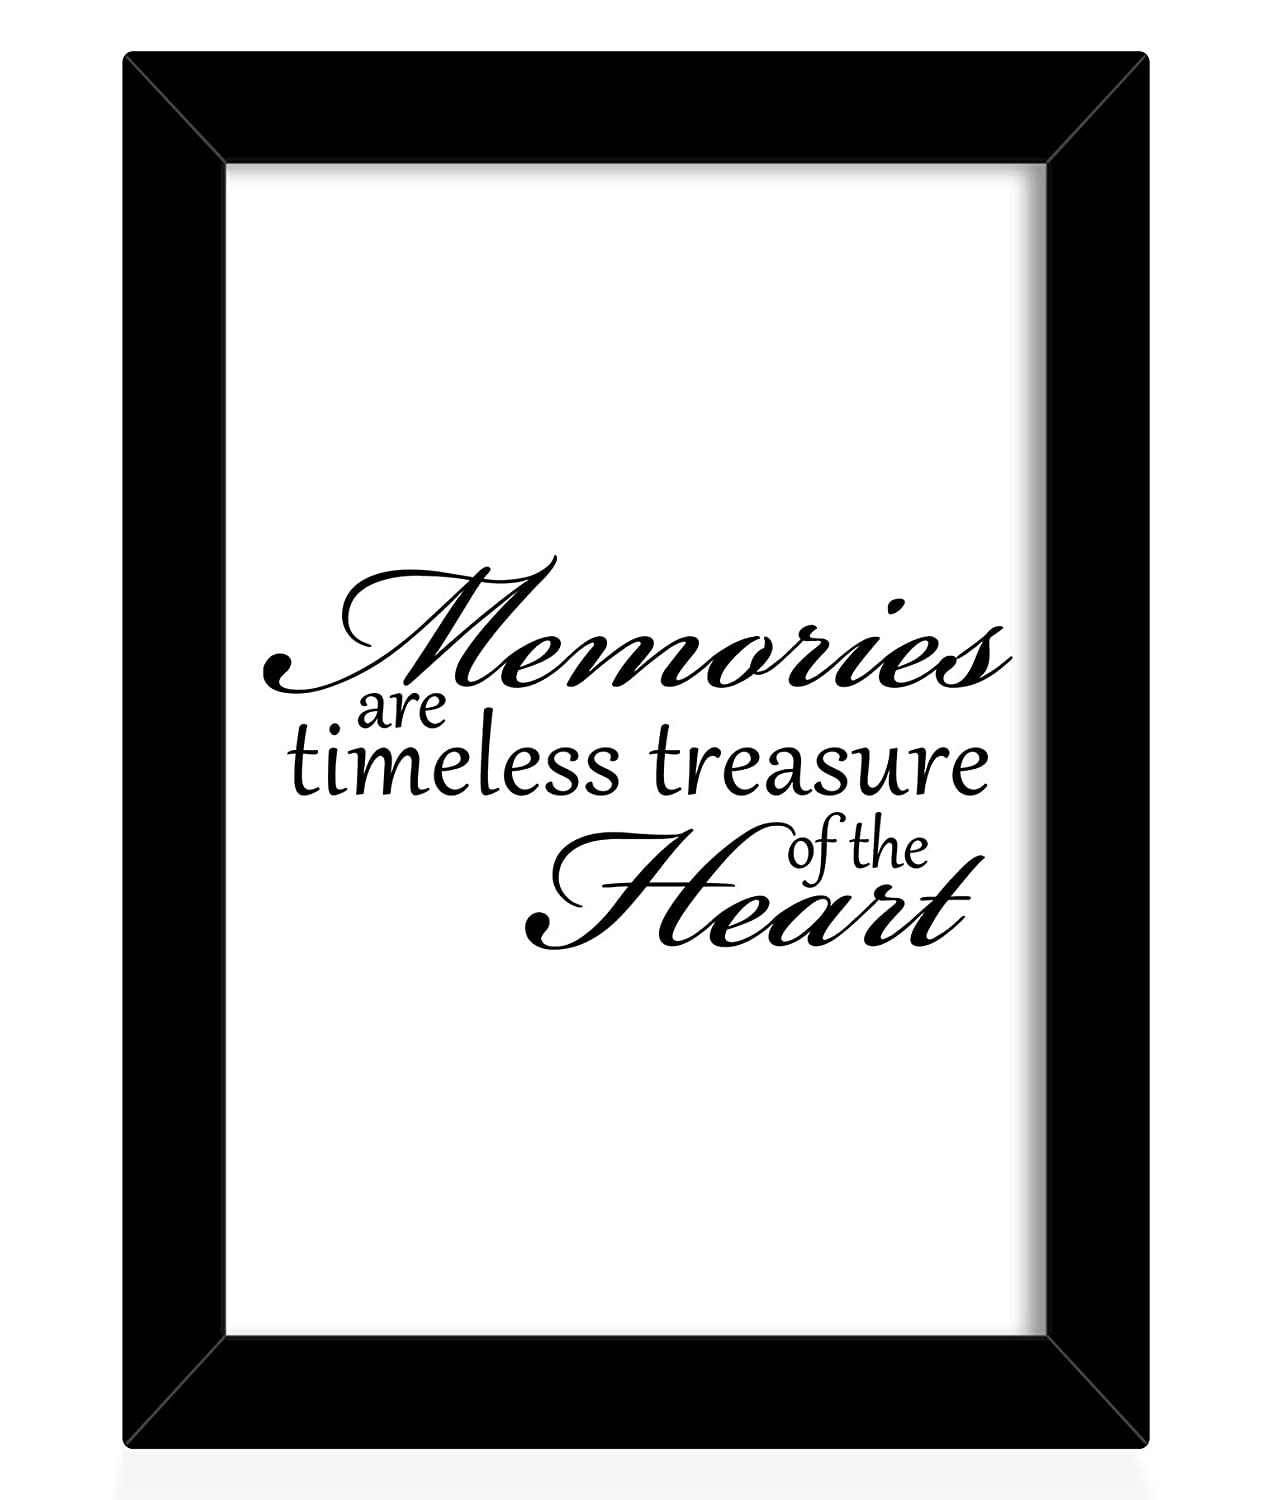 tied ribbons memories are timeless treasure of the heart printed